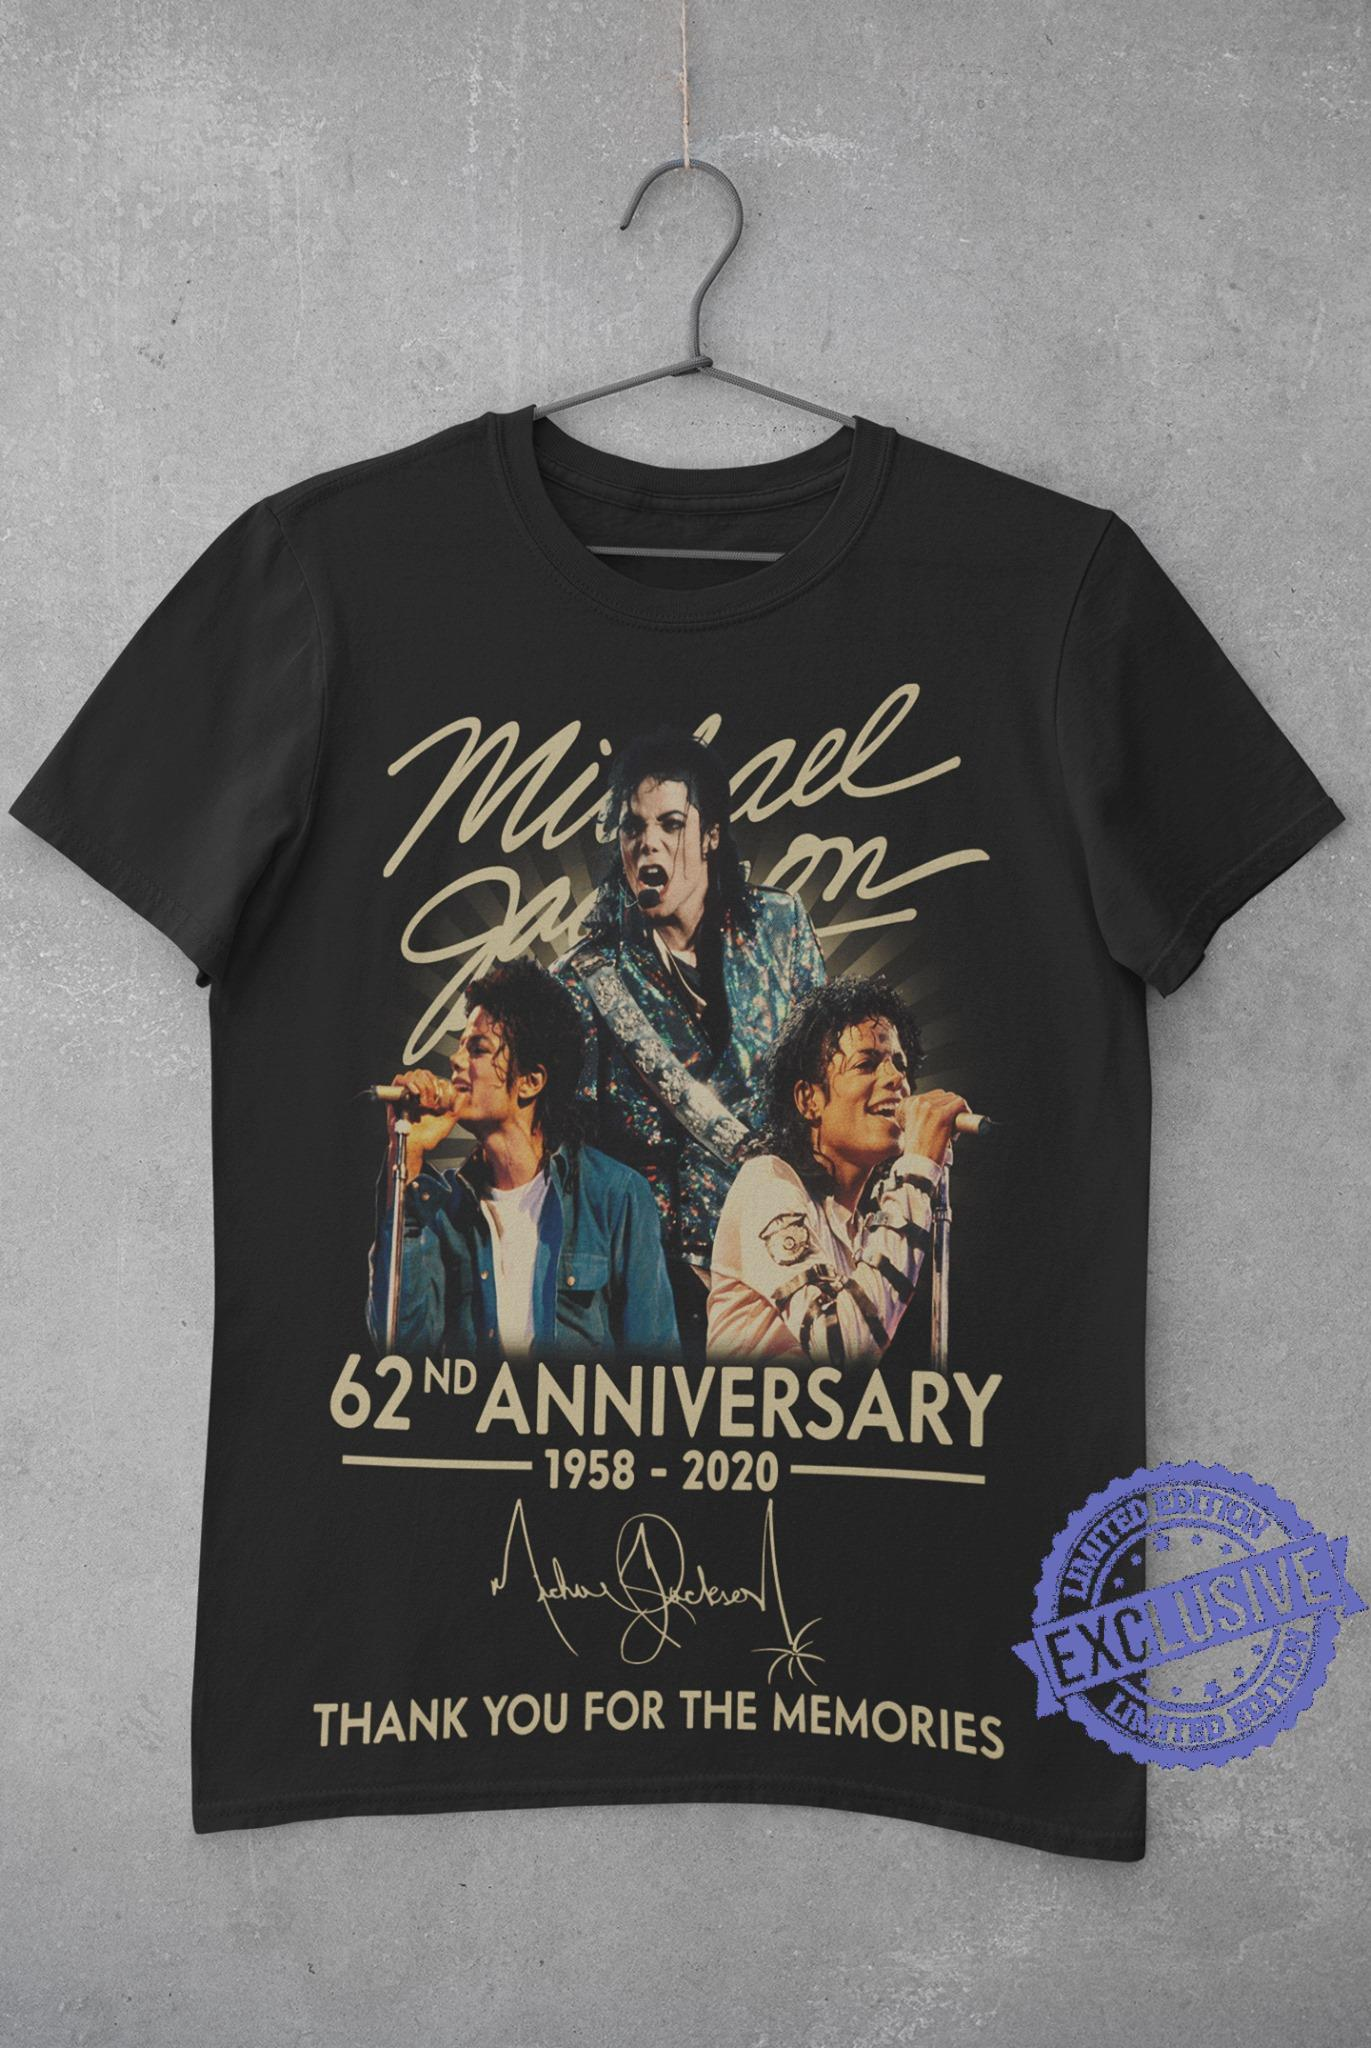 Mikael 62nd anniversary 1958 2020 thank you for the memories shirt